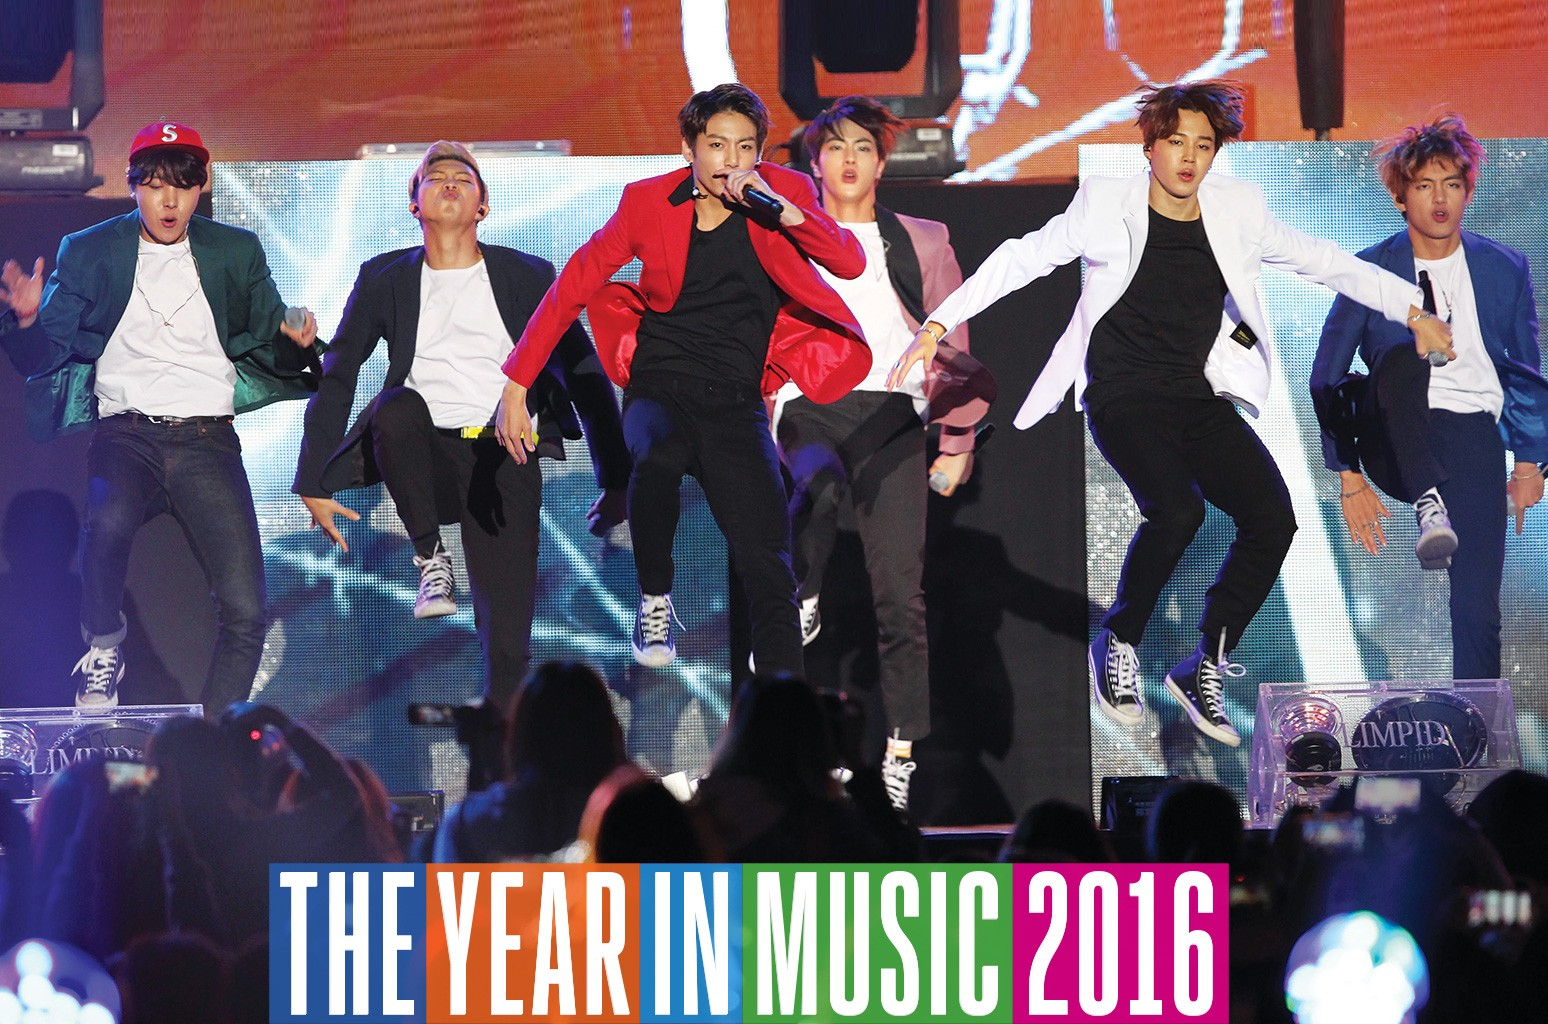 BTS perform onstage during the 2015 Asia Song Festival at Busan Asiad Main Stadium on Oct. 11, 2015 in Busan, South Korea.